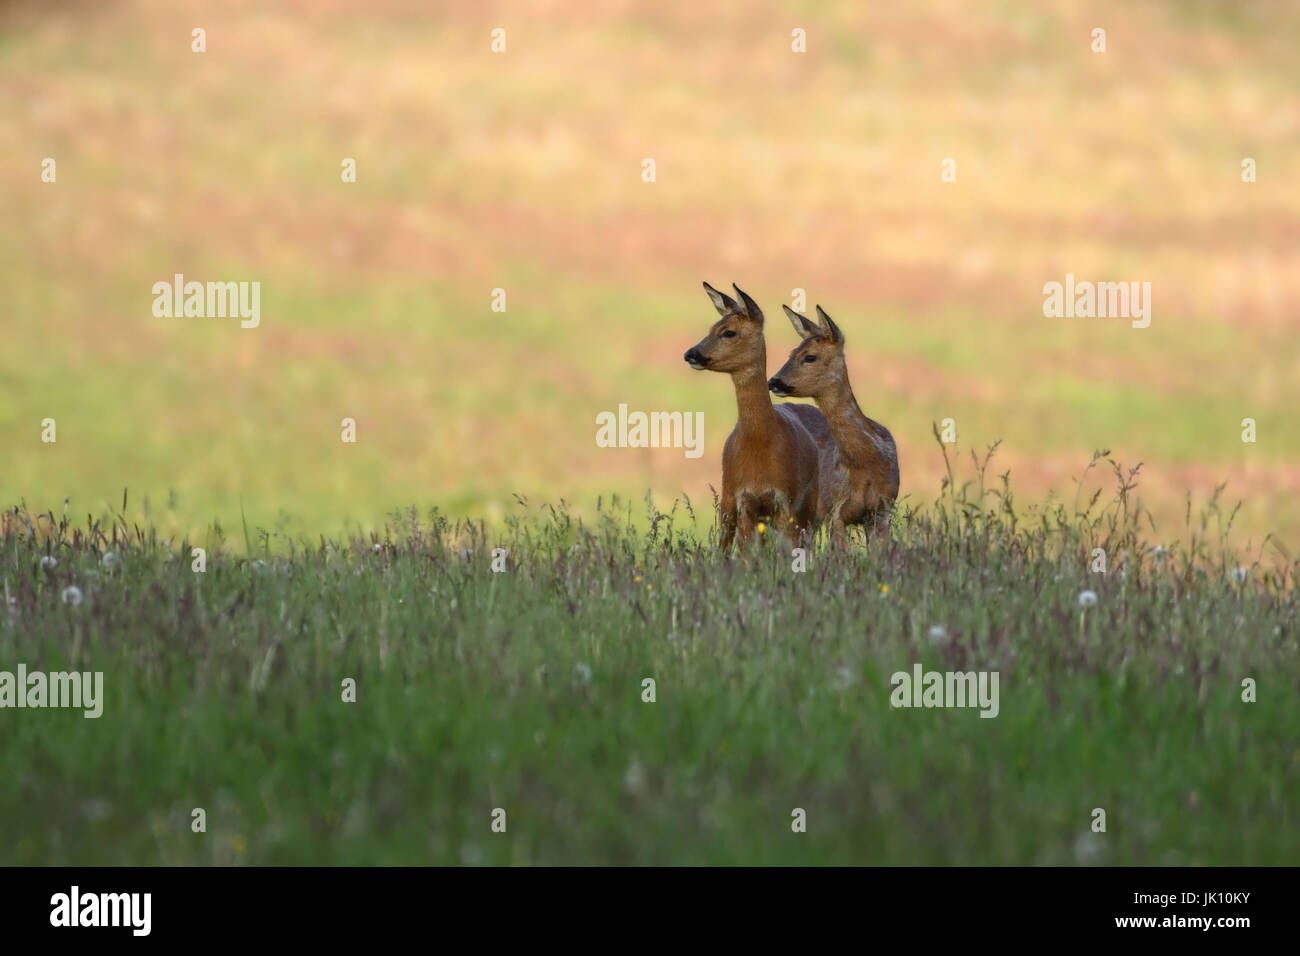 Roe deer on meadow in the early morning, Reh auf Wiese am frühen Morgen - Stock Image